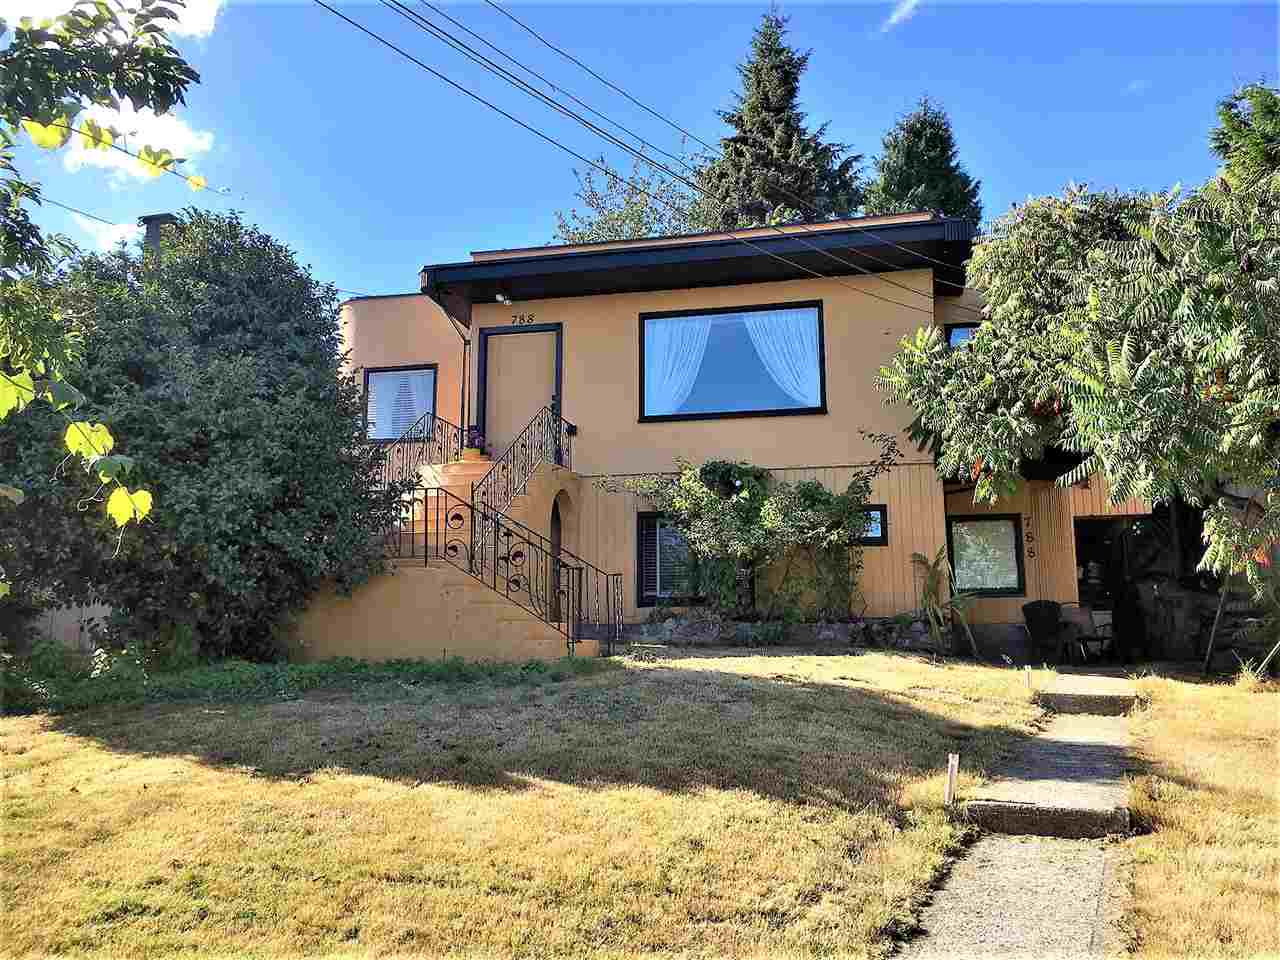 Main Photo: 788 CALVERHALL Street in North Vancouver: Calverhall House for sale : MLS® # R2199108